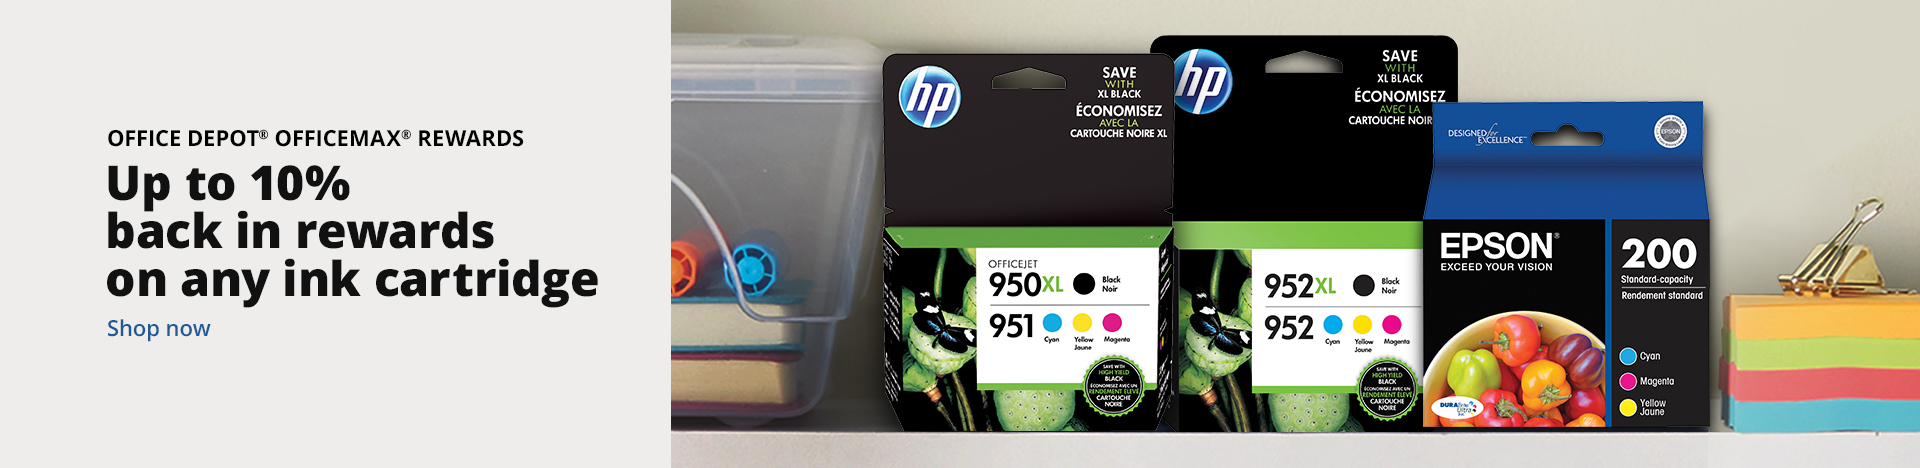 Up to 10% back in rewards on any ink cartridge